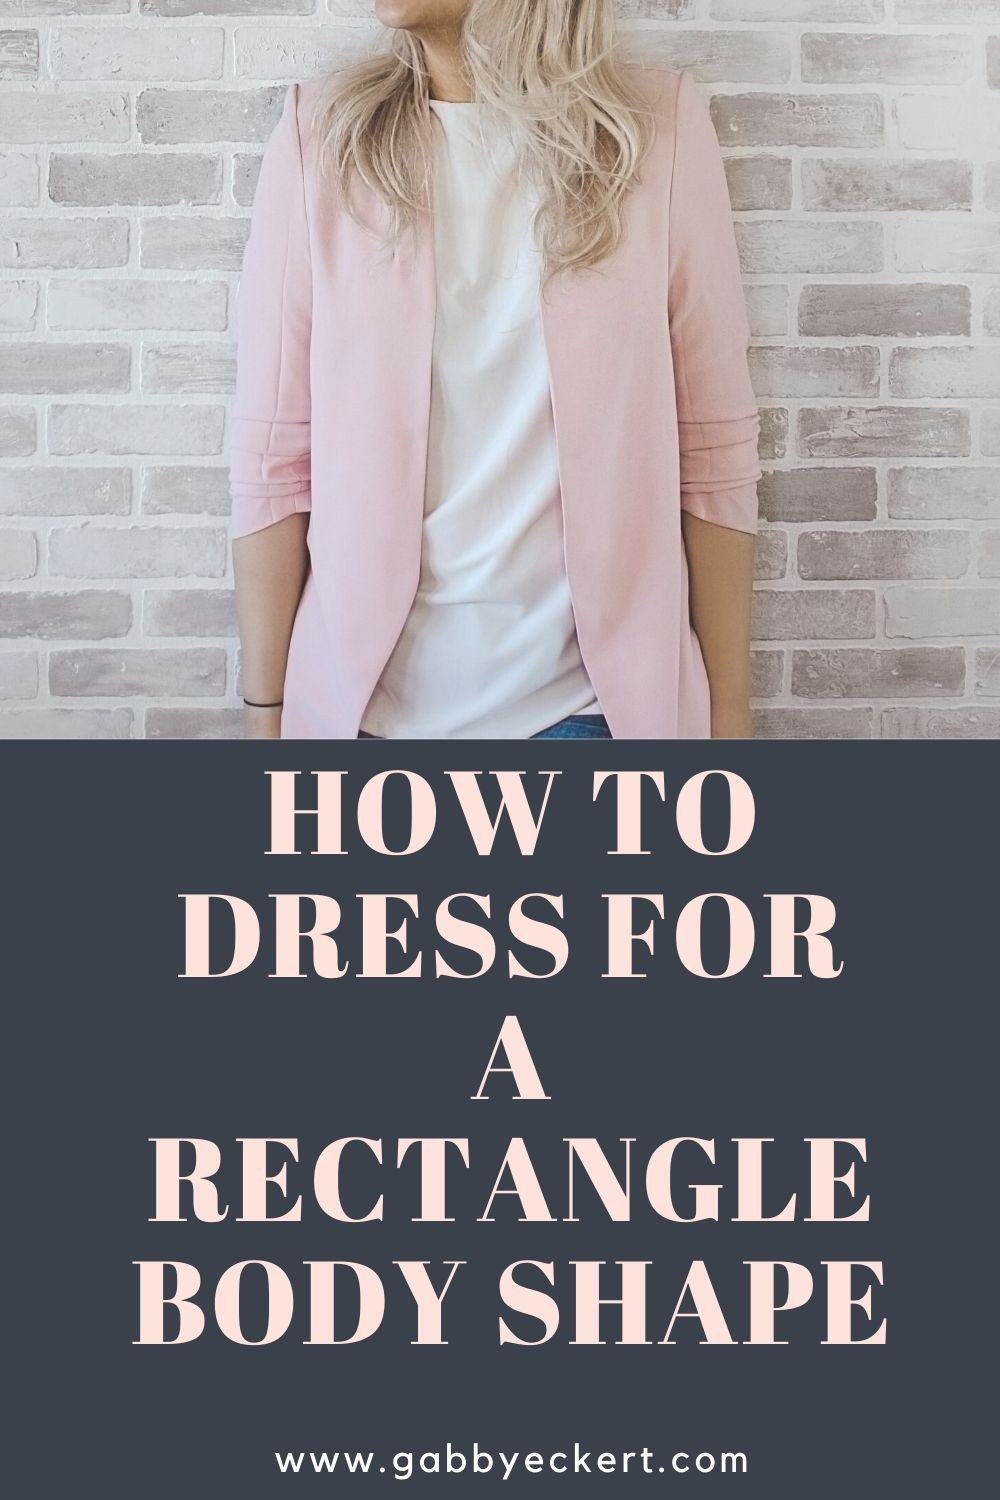 How to dress for a rectangle body shape